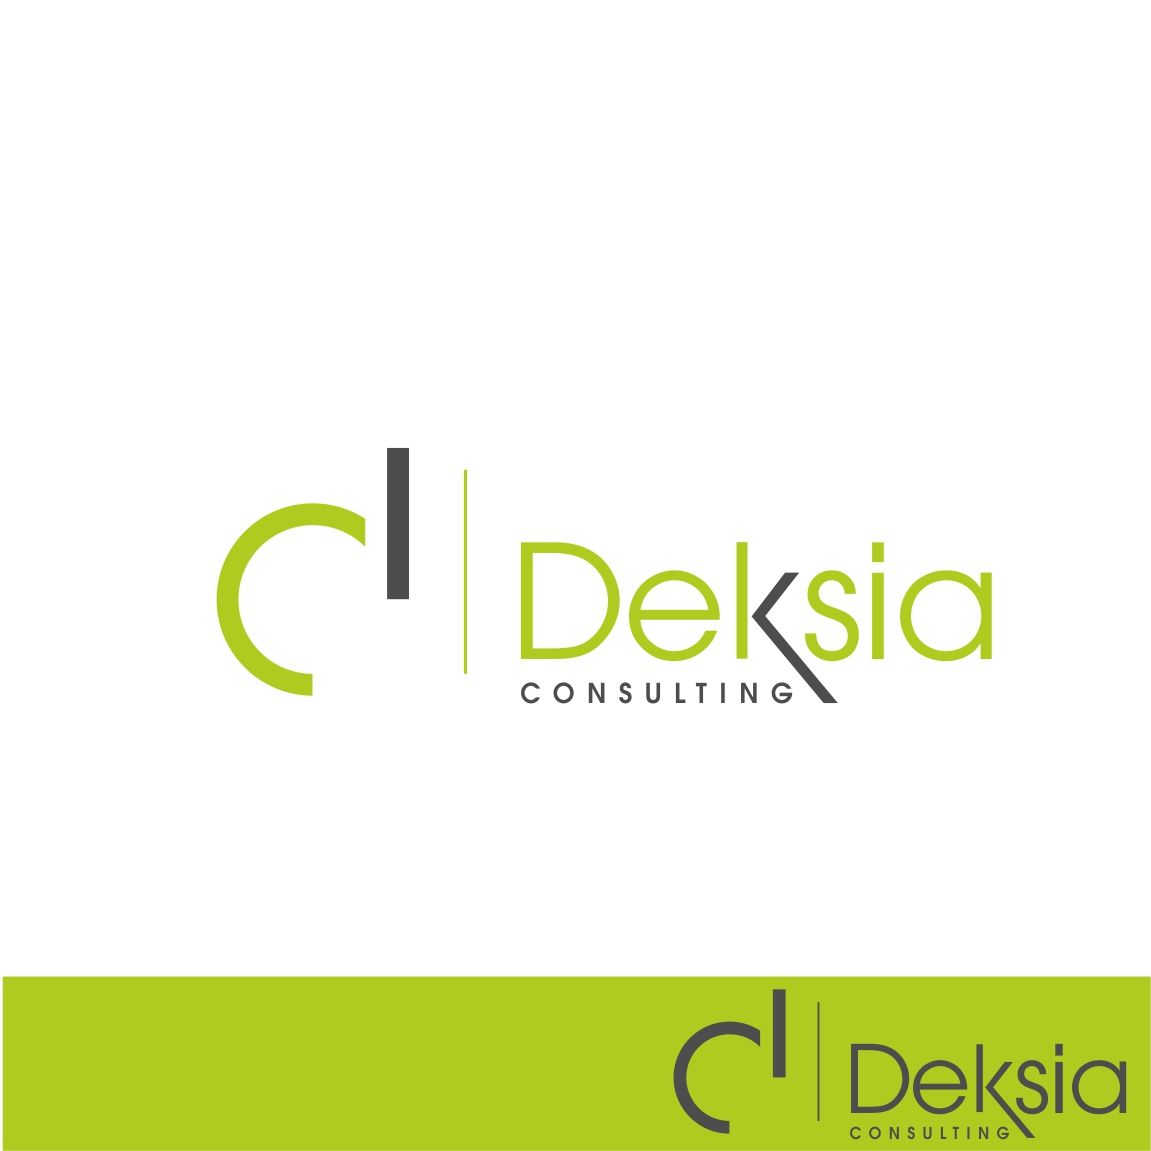 259 modern professional business consultant logo designs